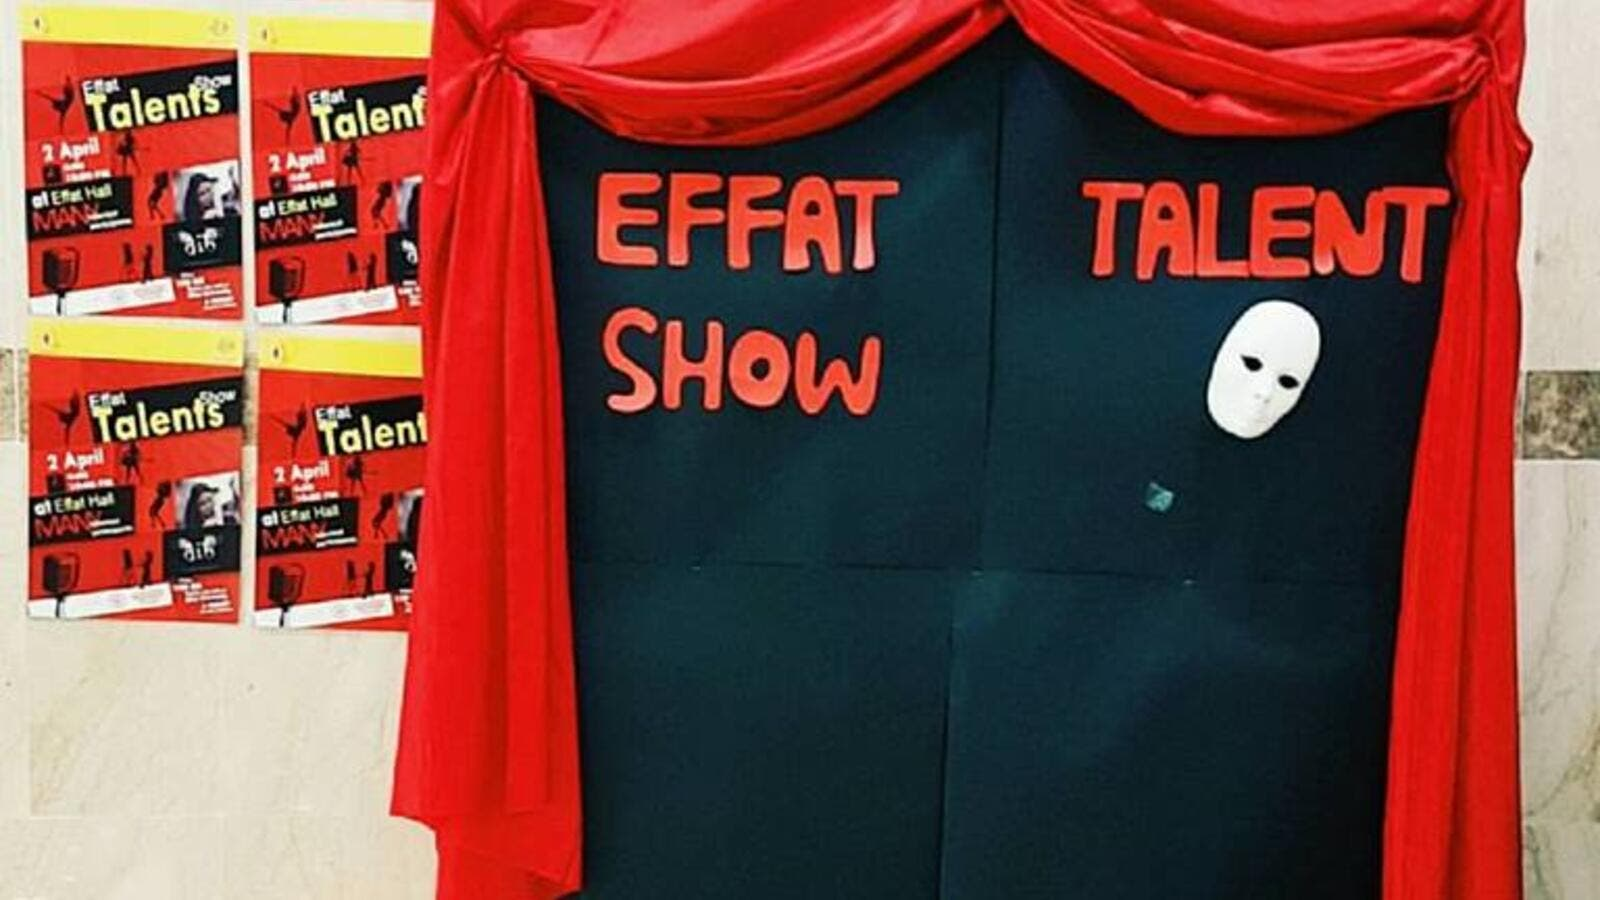 Saudi students made a university talent show, and some were outraged by the event (Facebook)